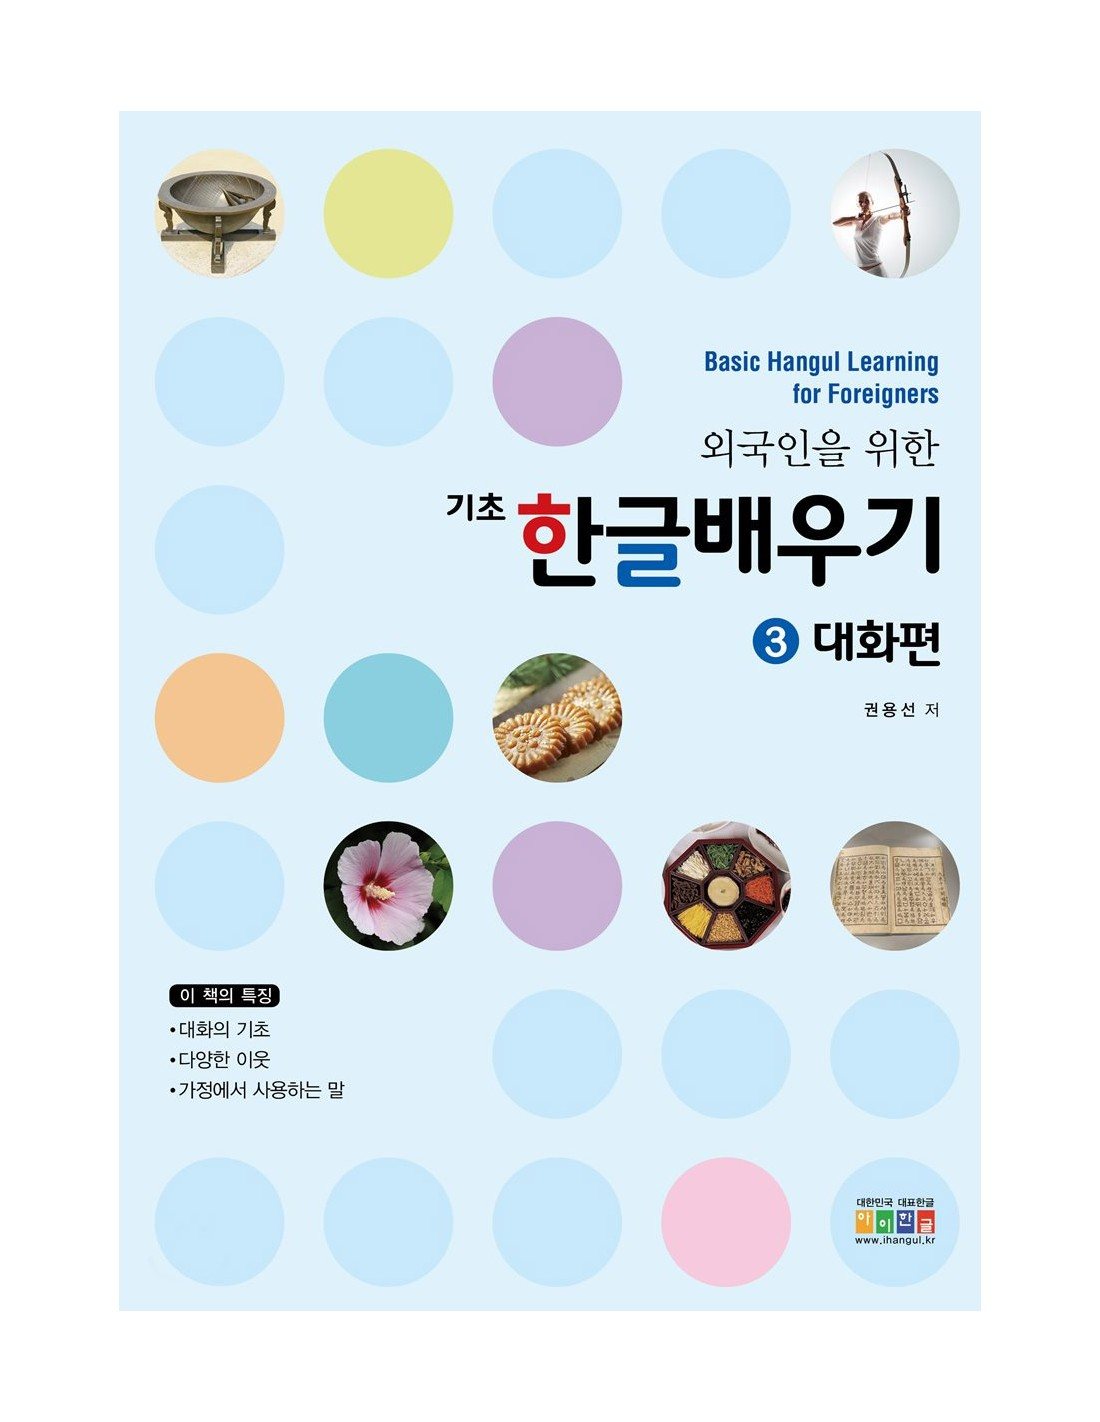 Amazing Resources for Learning Korean - Learn Korean